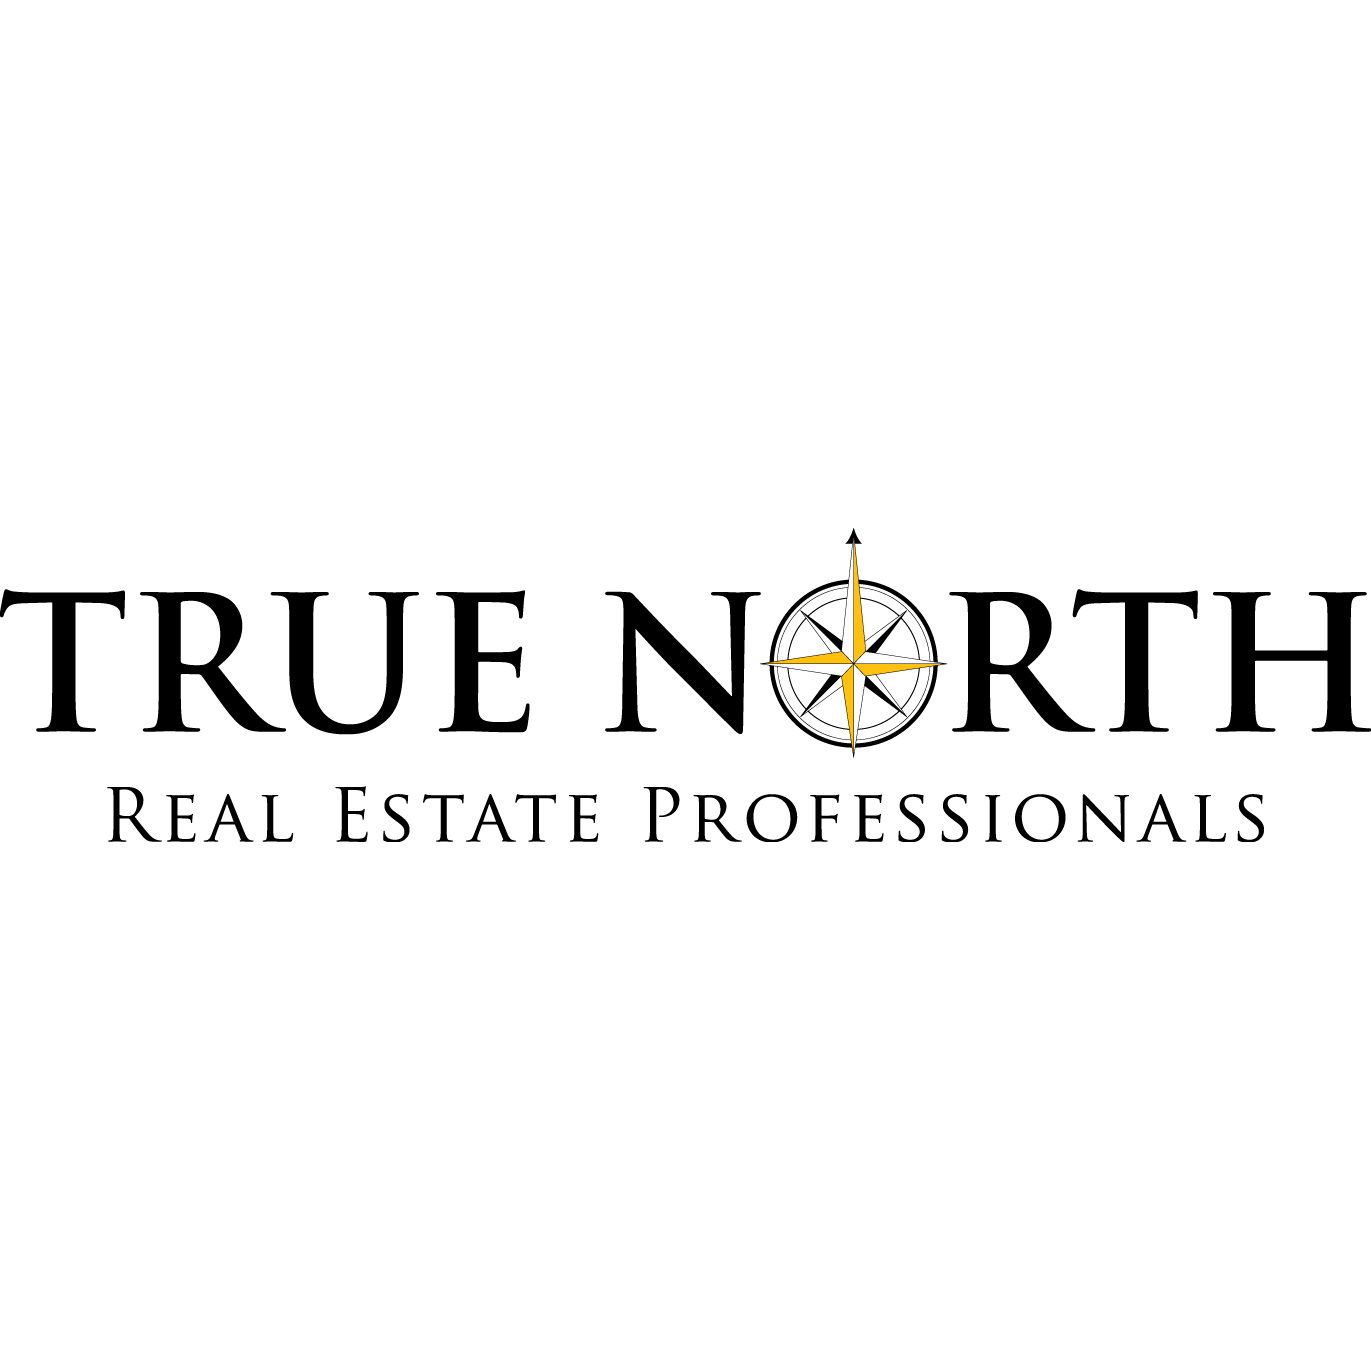 Yolanda Martin | True North Real Estate Professionals - Johns Creek, GA 30022 - (770)490-7368 | ShowMeLocal.com